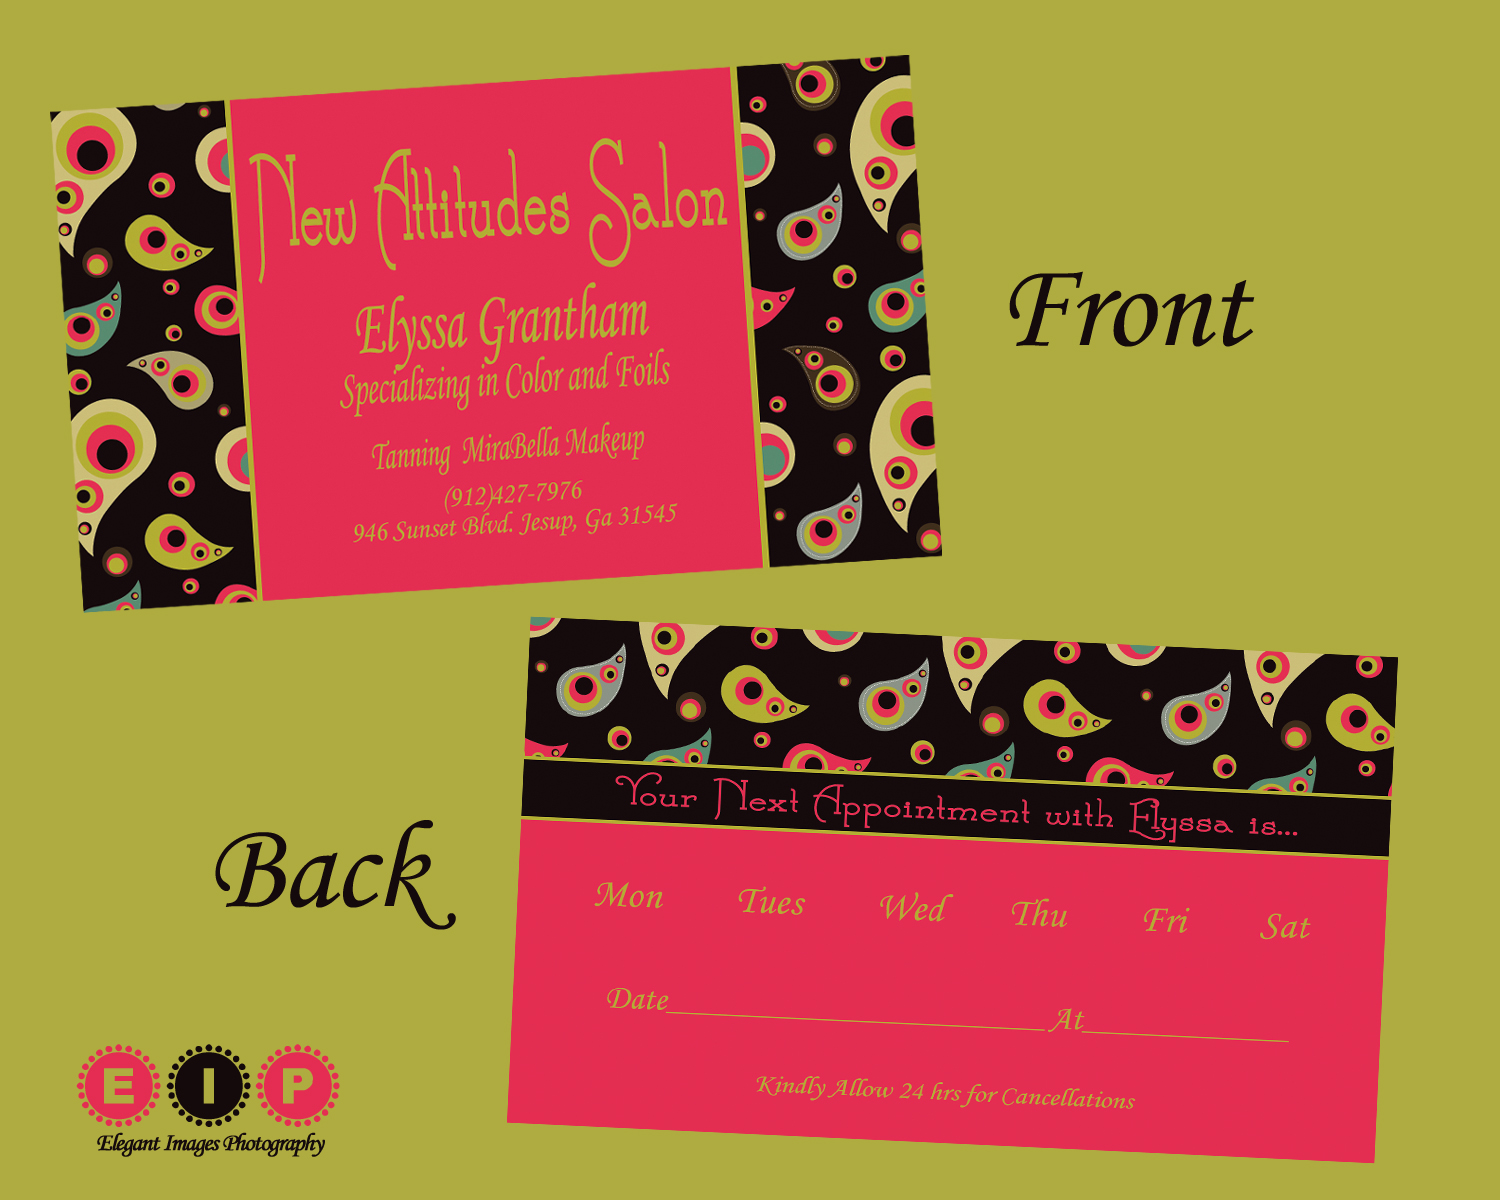 Elegant images by mandy business cards for elyssa new for A new attitude salon